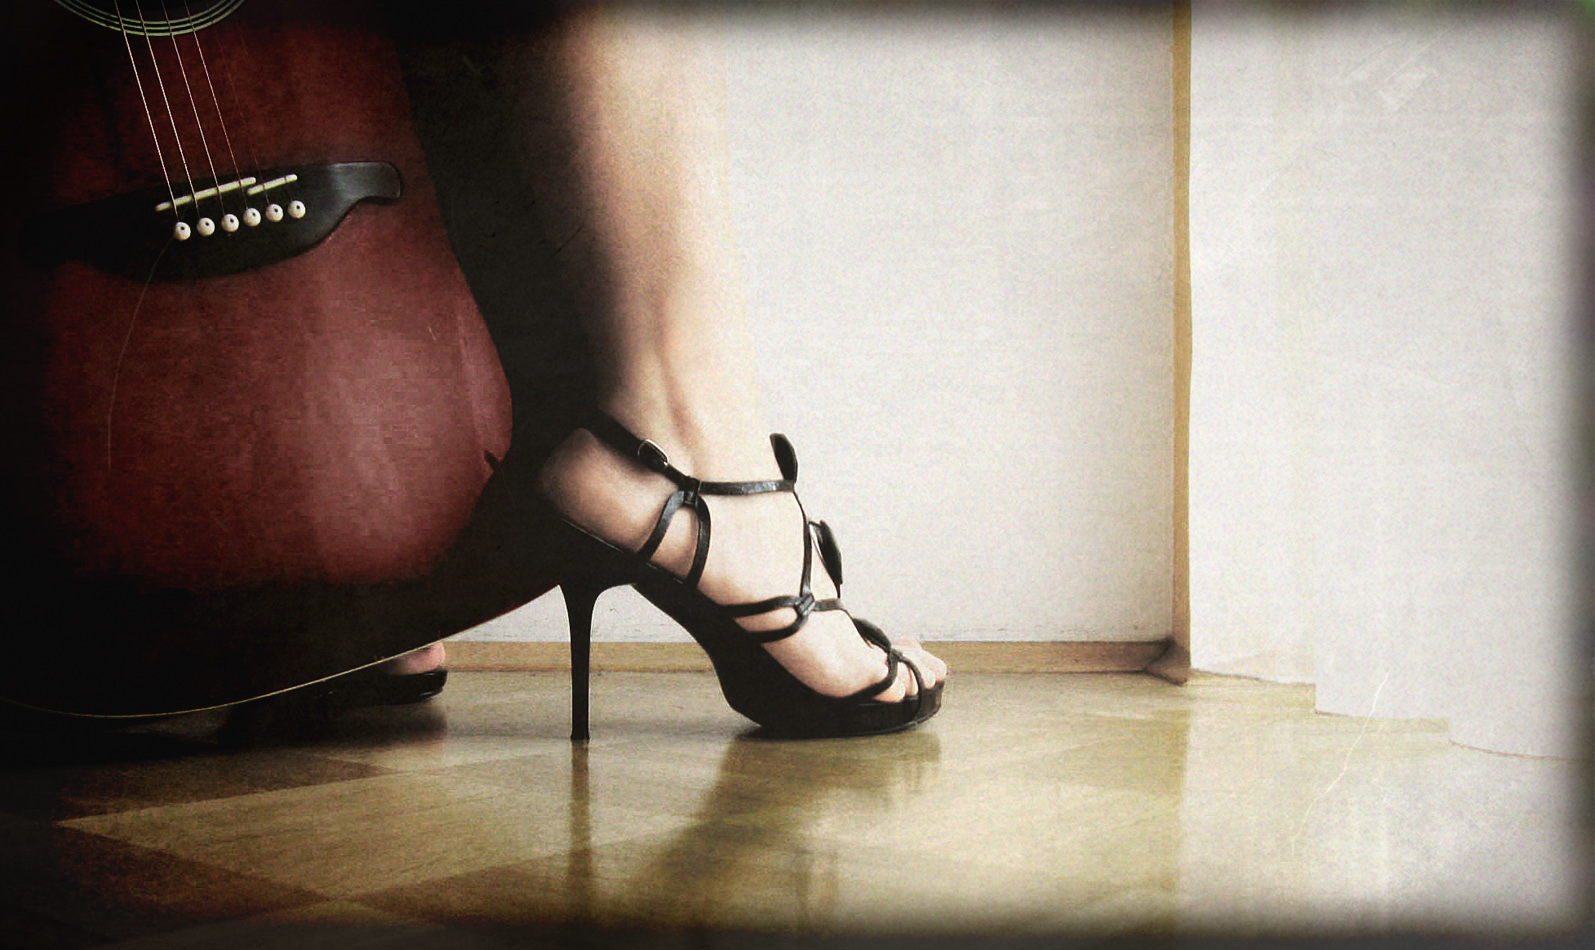 ♥Sexy Red Heels♥  Fashion  Entertainment Background Wallpapers 1595x950